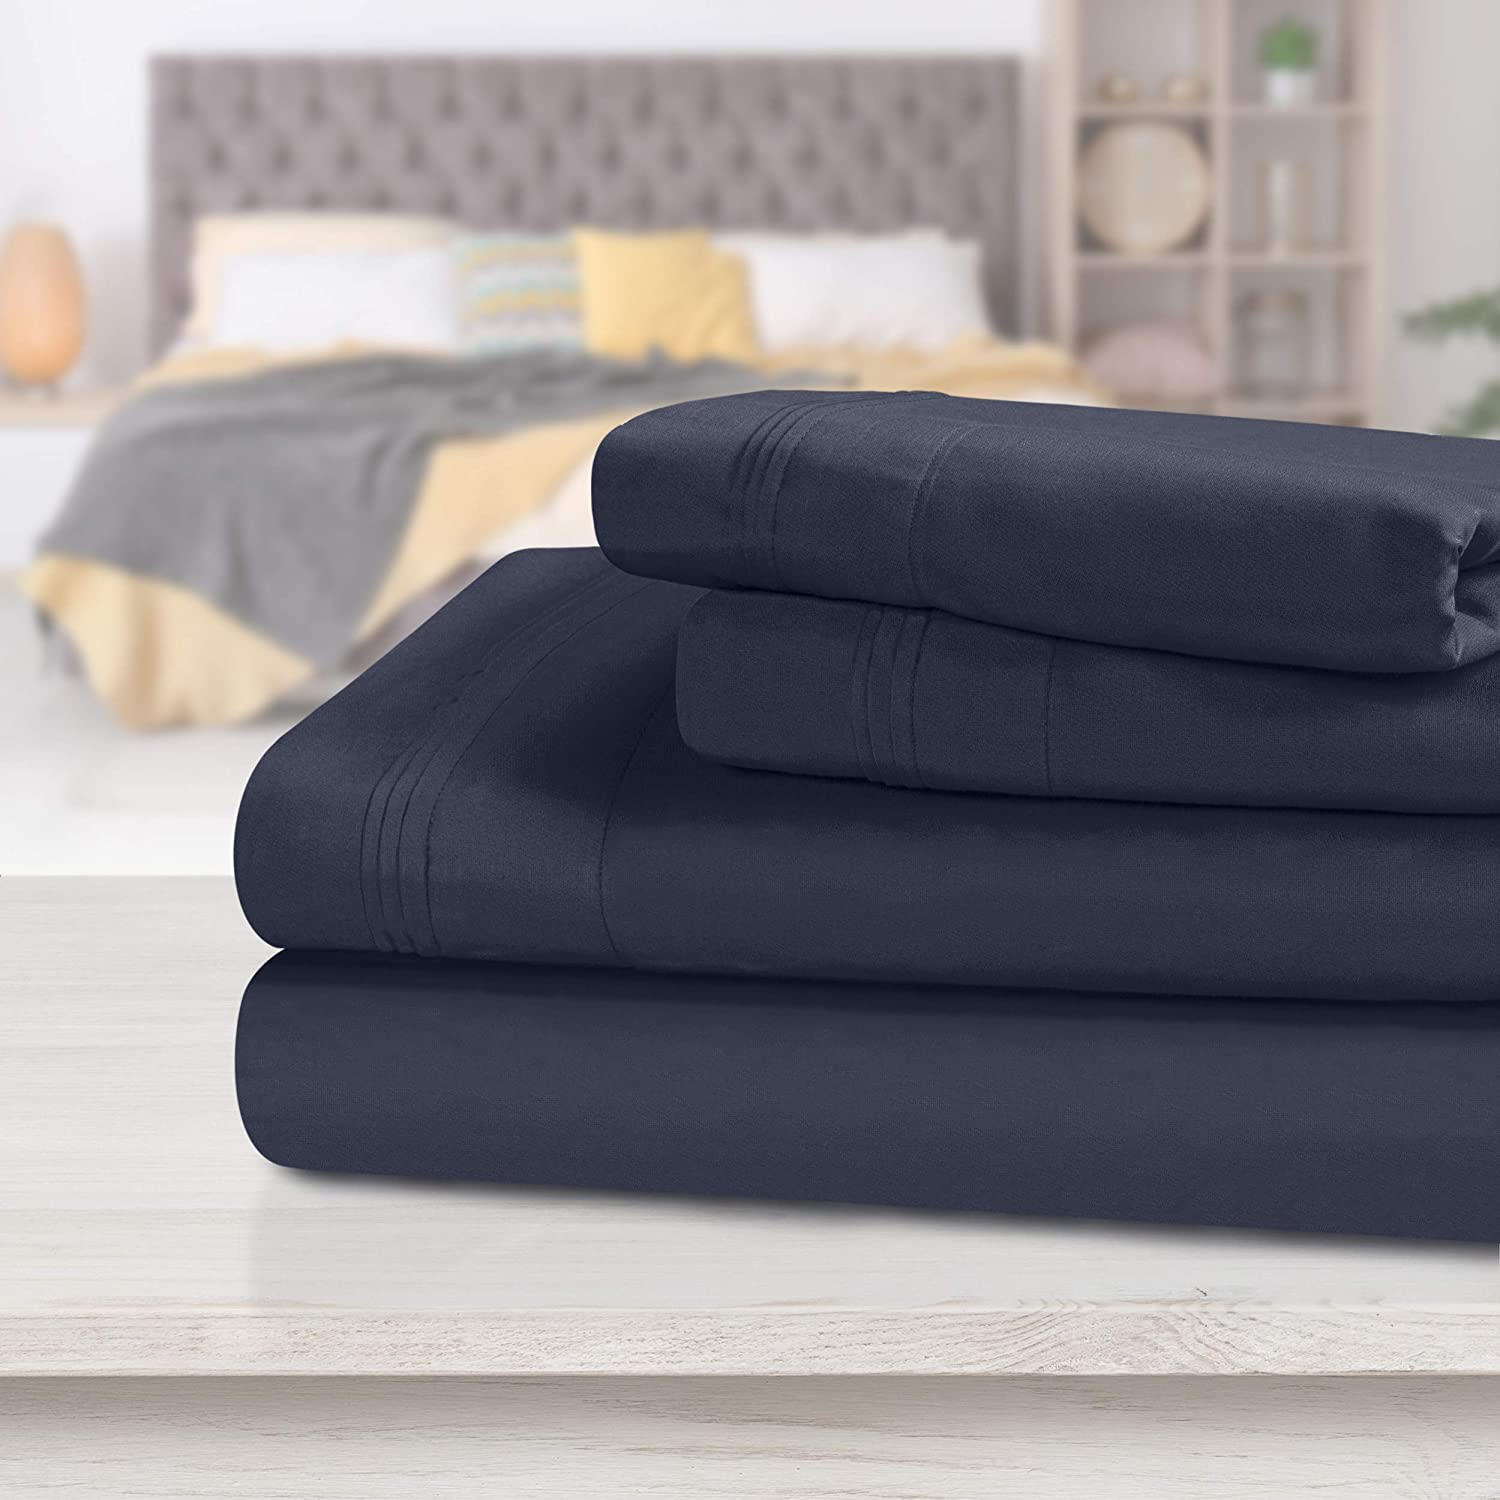 Select Bedding Linen 1000 Thread Count Egyptian Cotton AU Sizes Navy Blue Solid